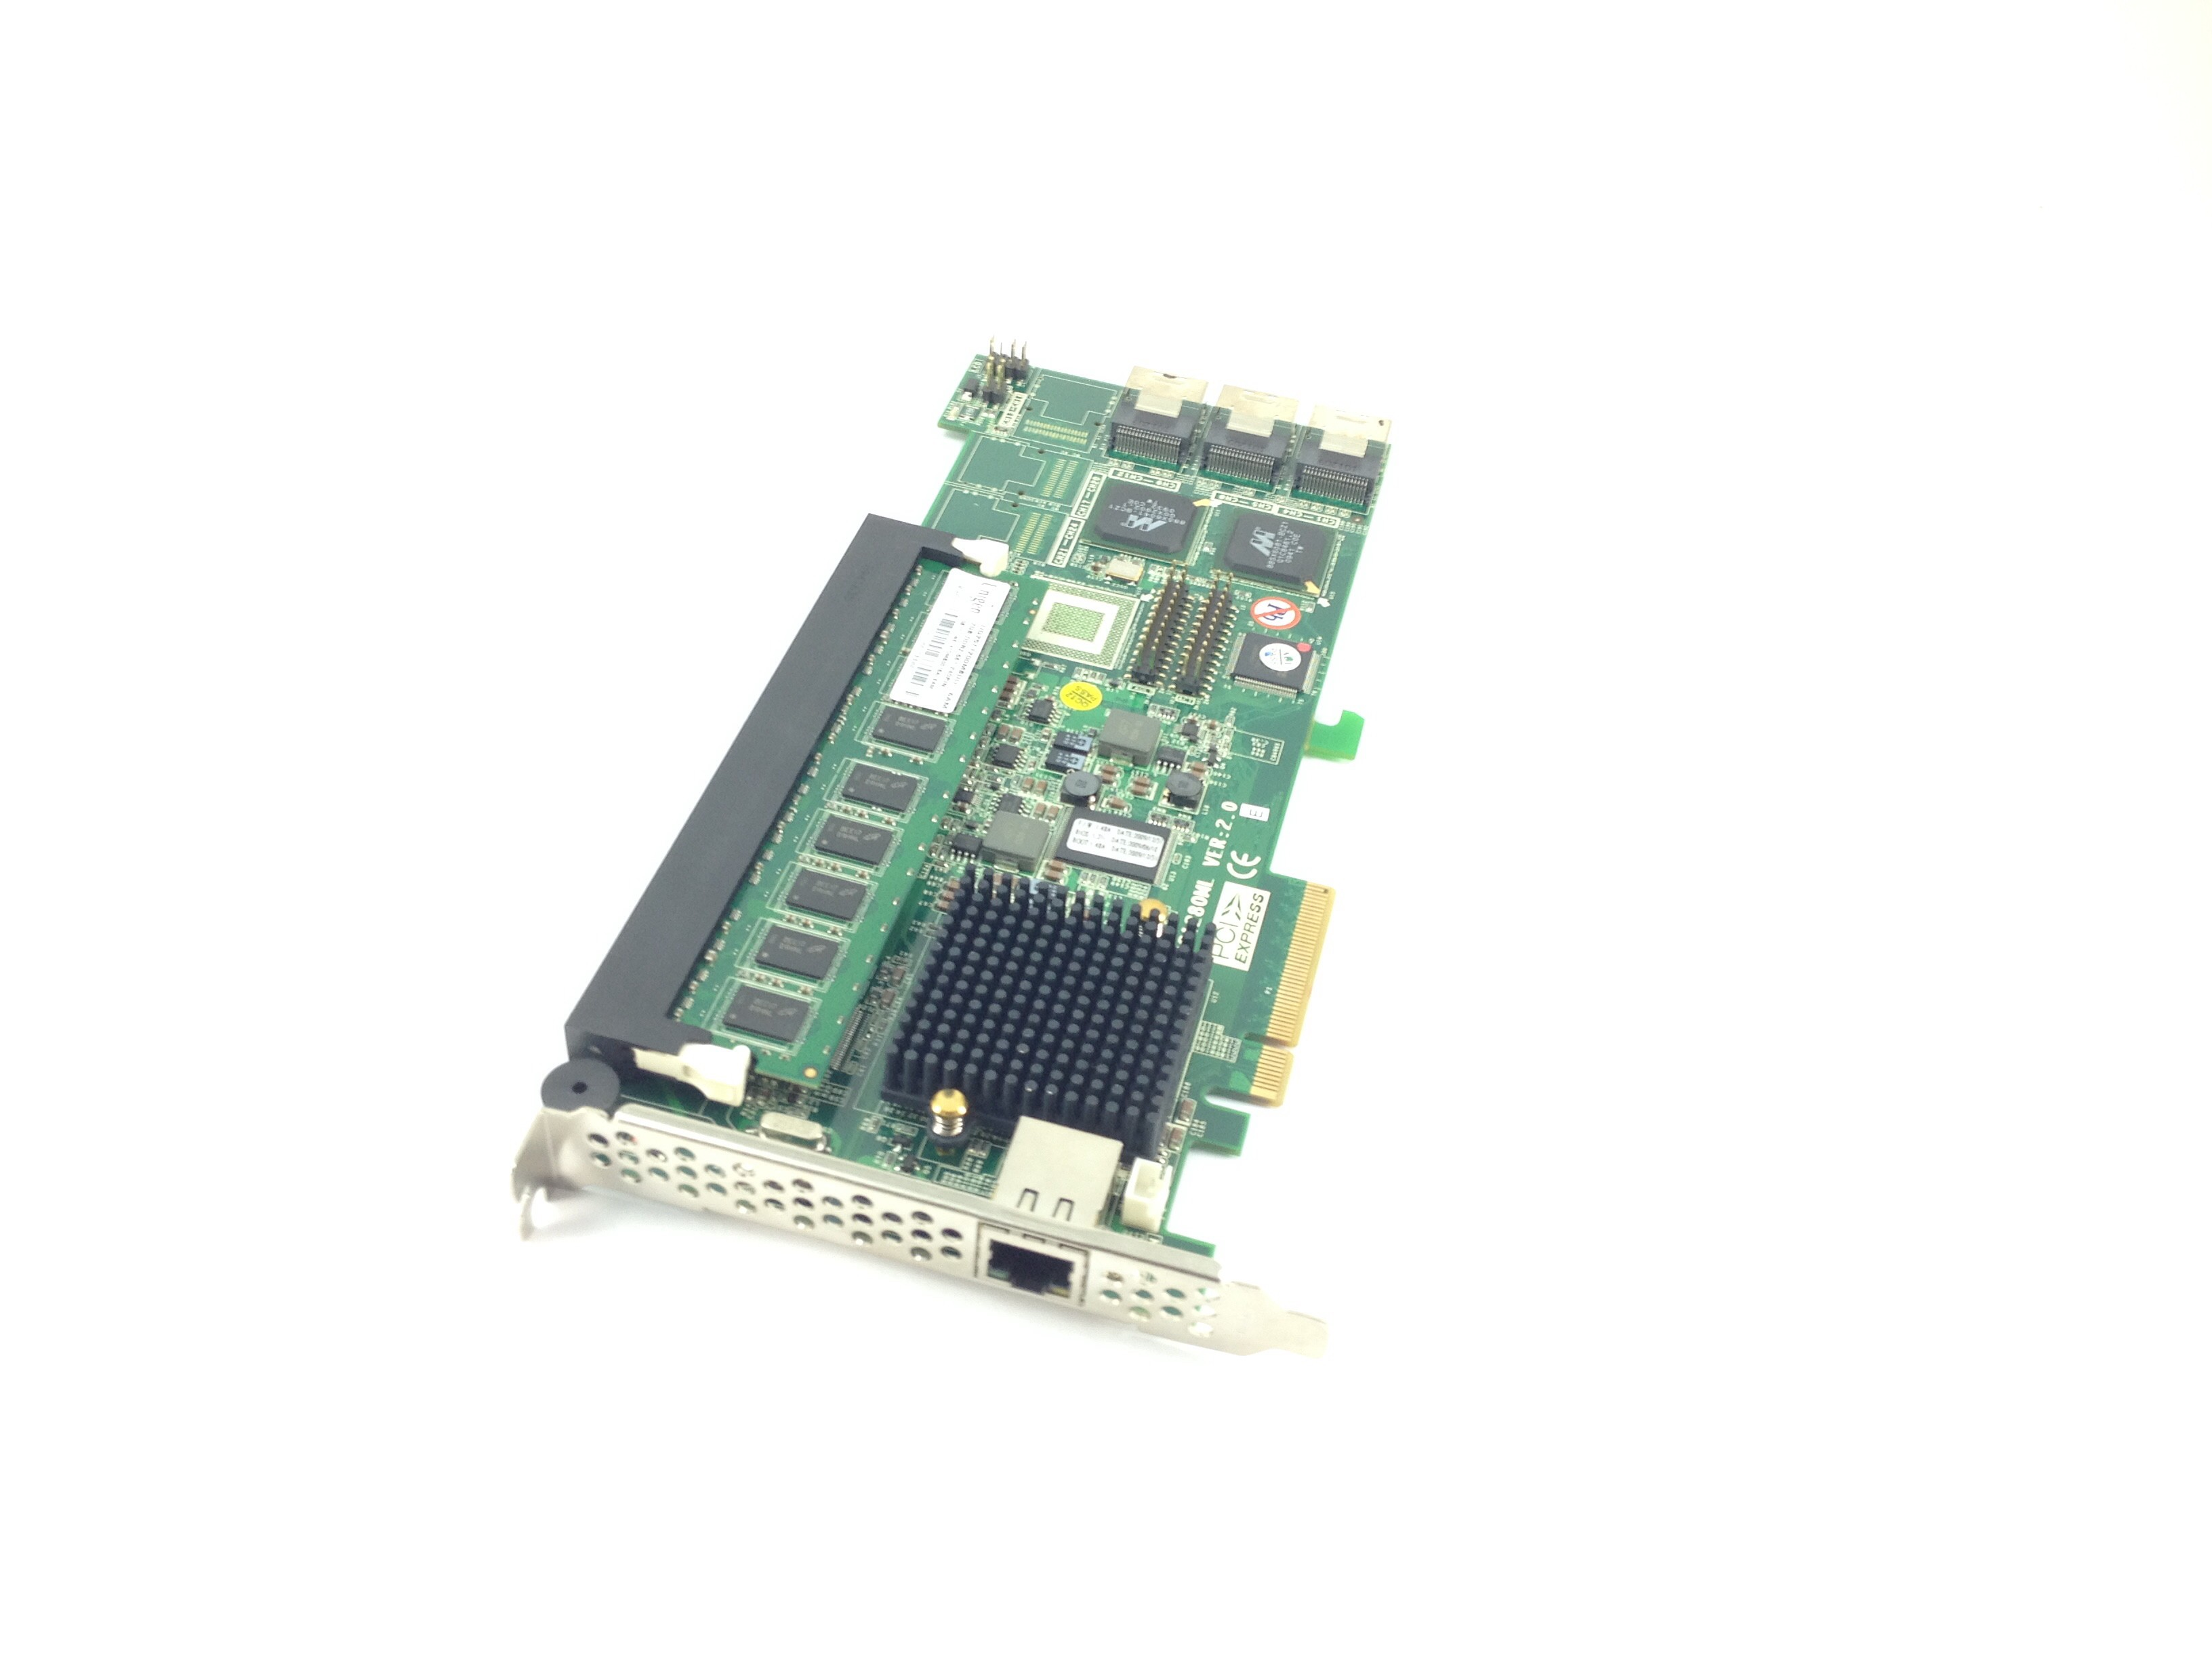 Areca Arc1280ML VER 2.0 Pci Express 12-Port SATA Online Raid Controller (ARC1280ML)